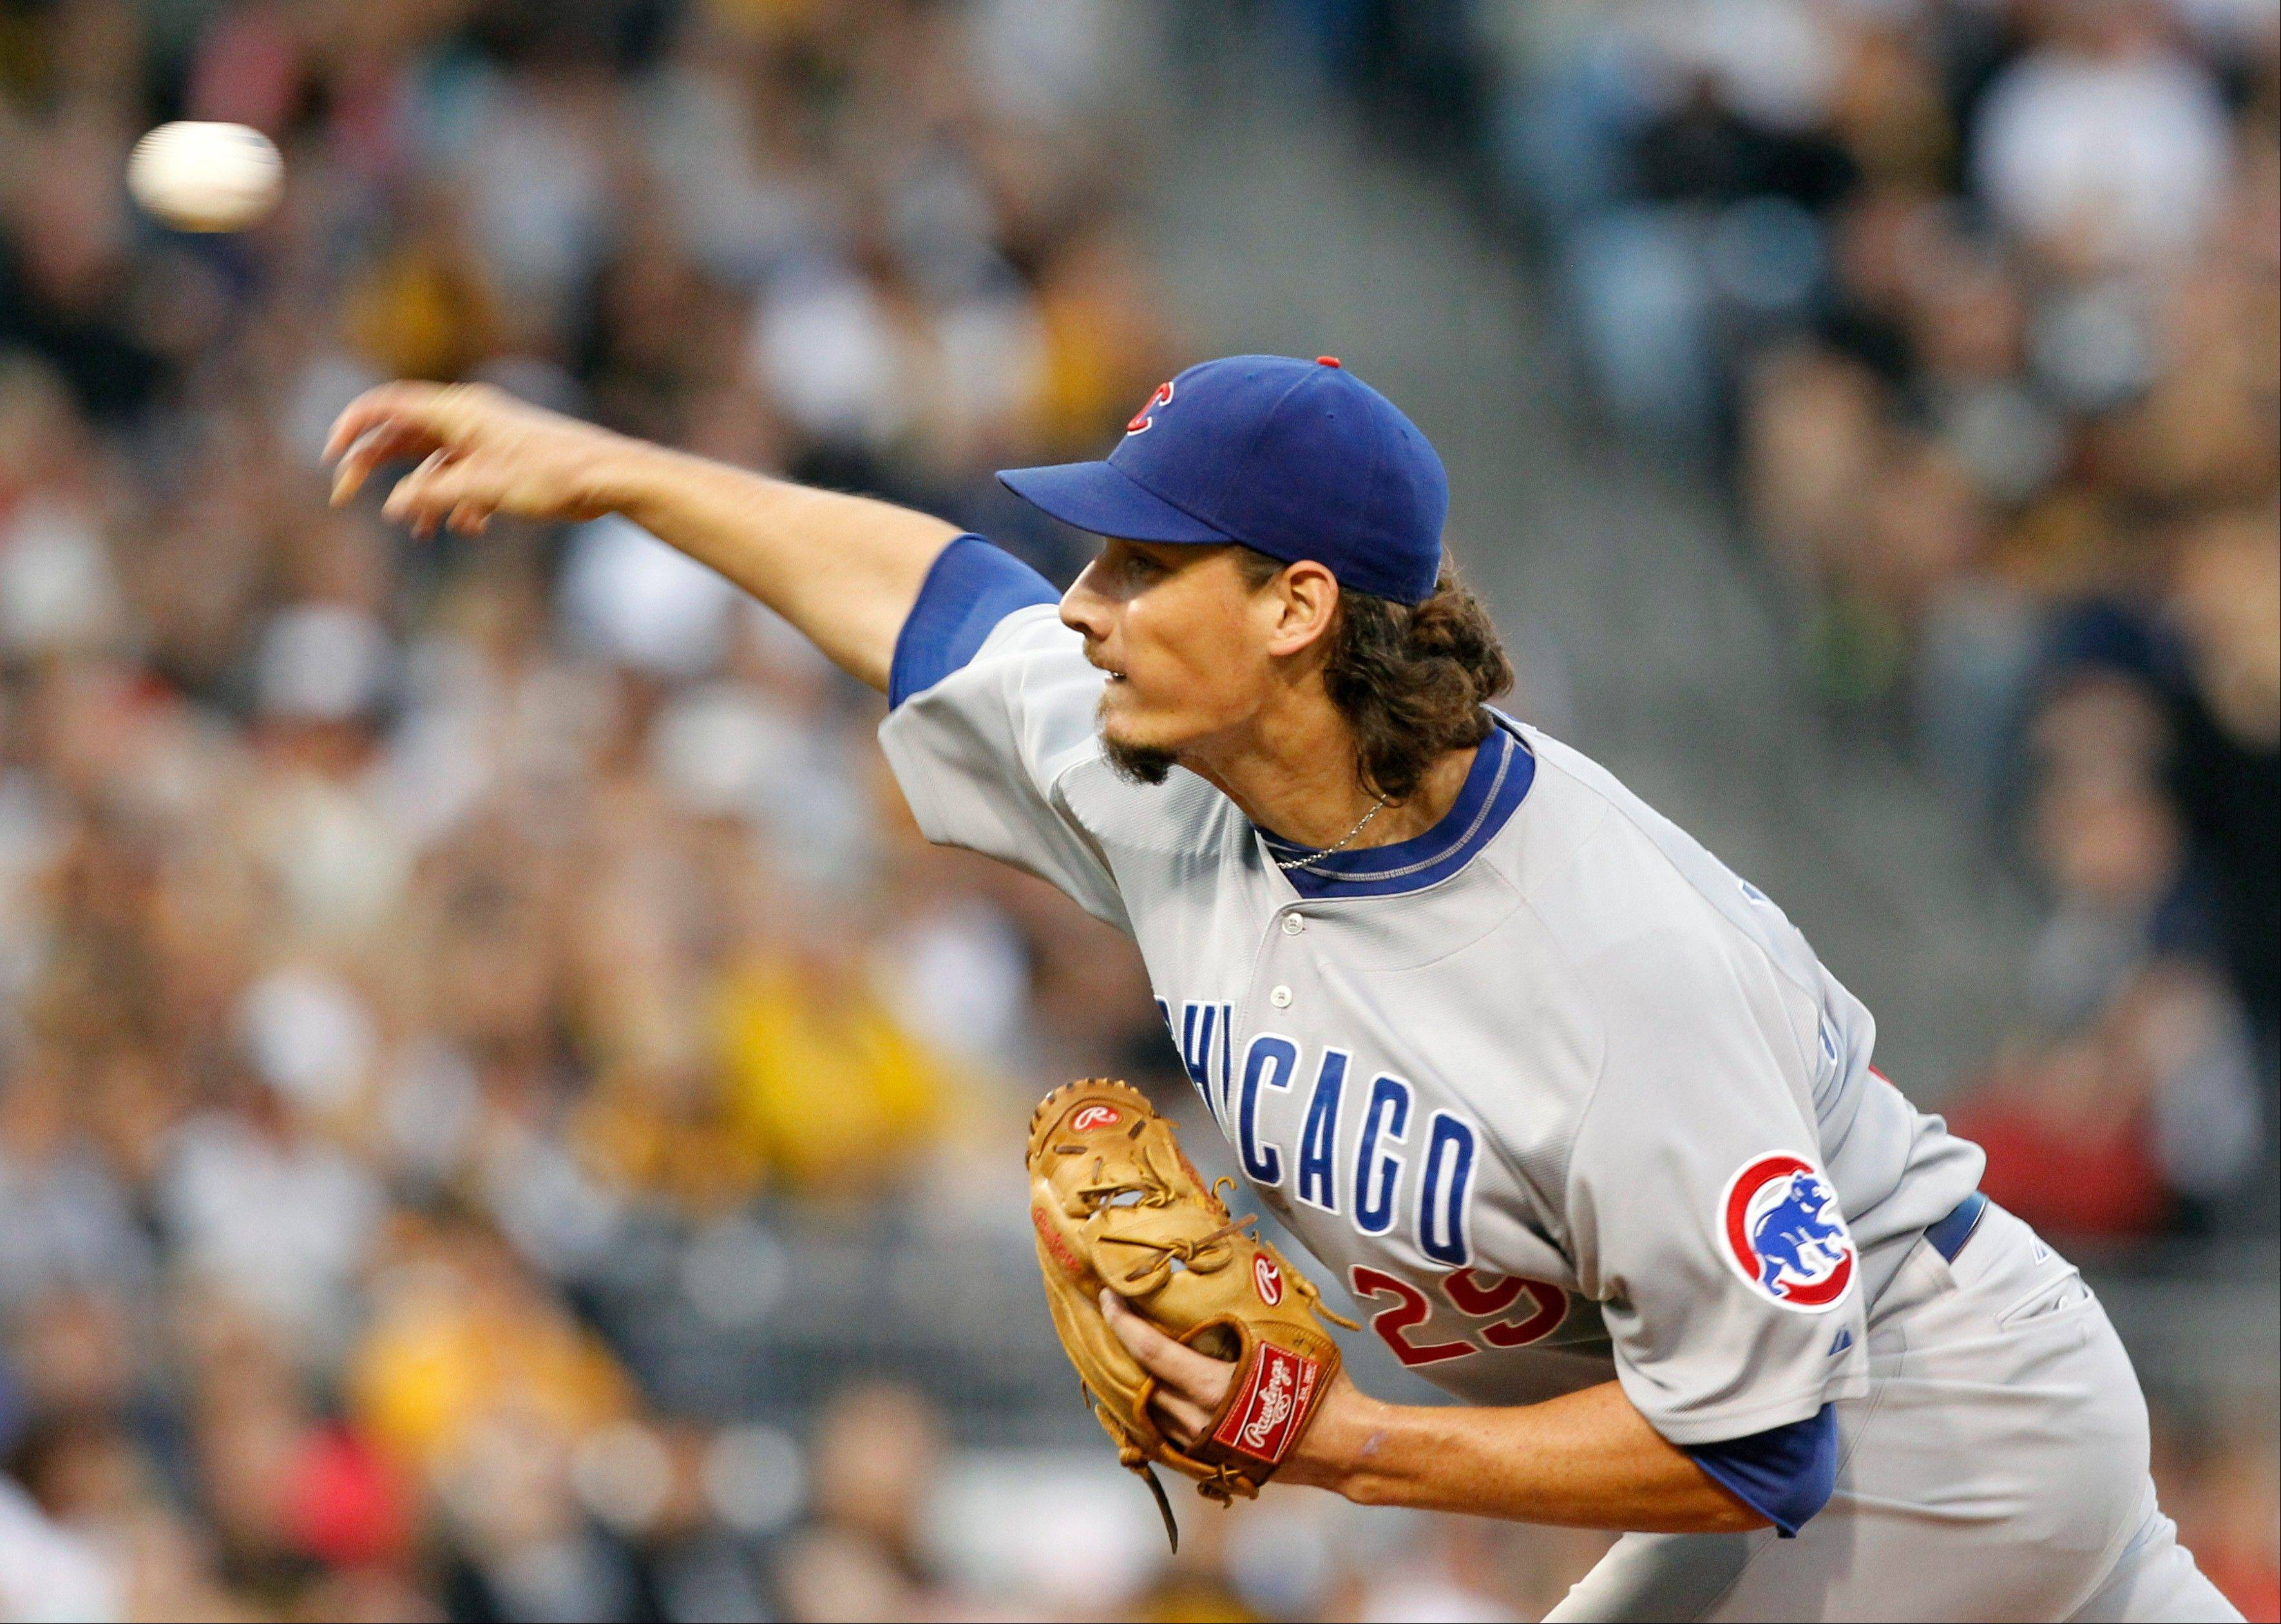 Cubs starting pitcher Jeff Samardzija threw a complete-game victory Saturday against the Pittsburgh Pirates at PNC Park.